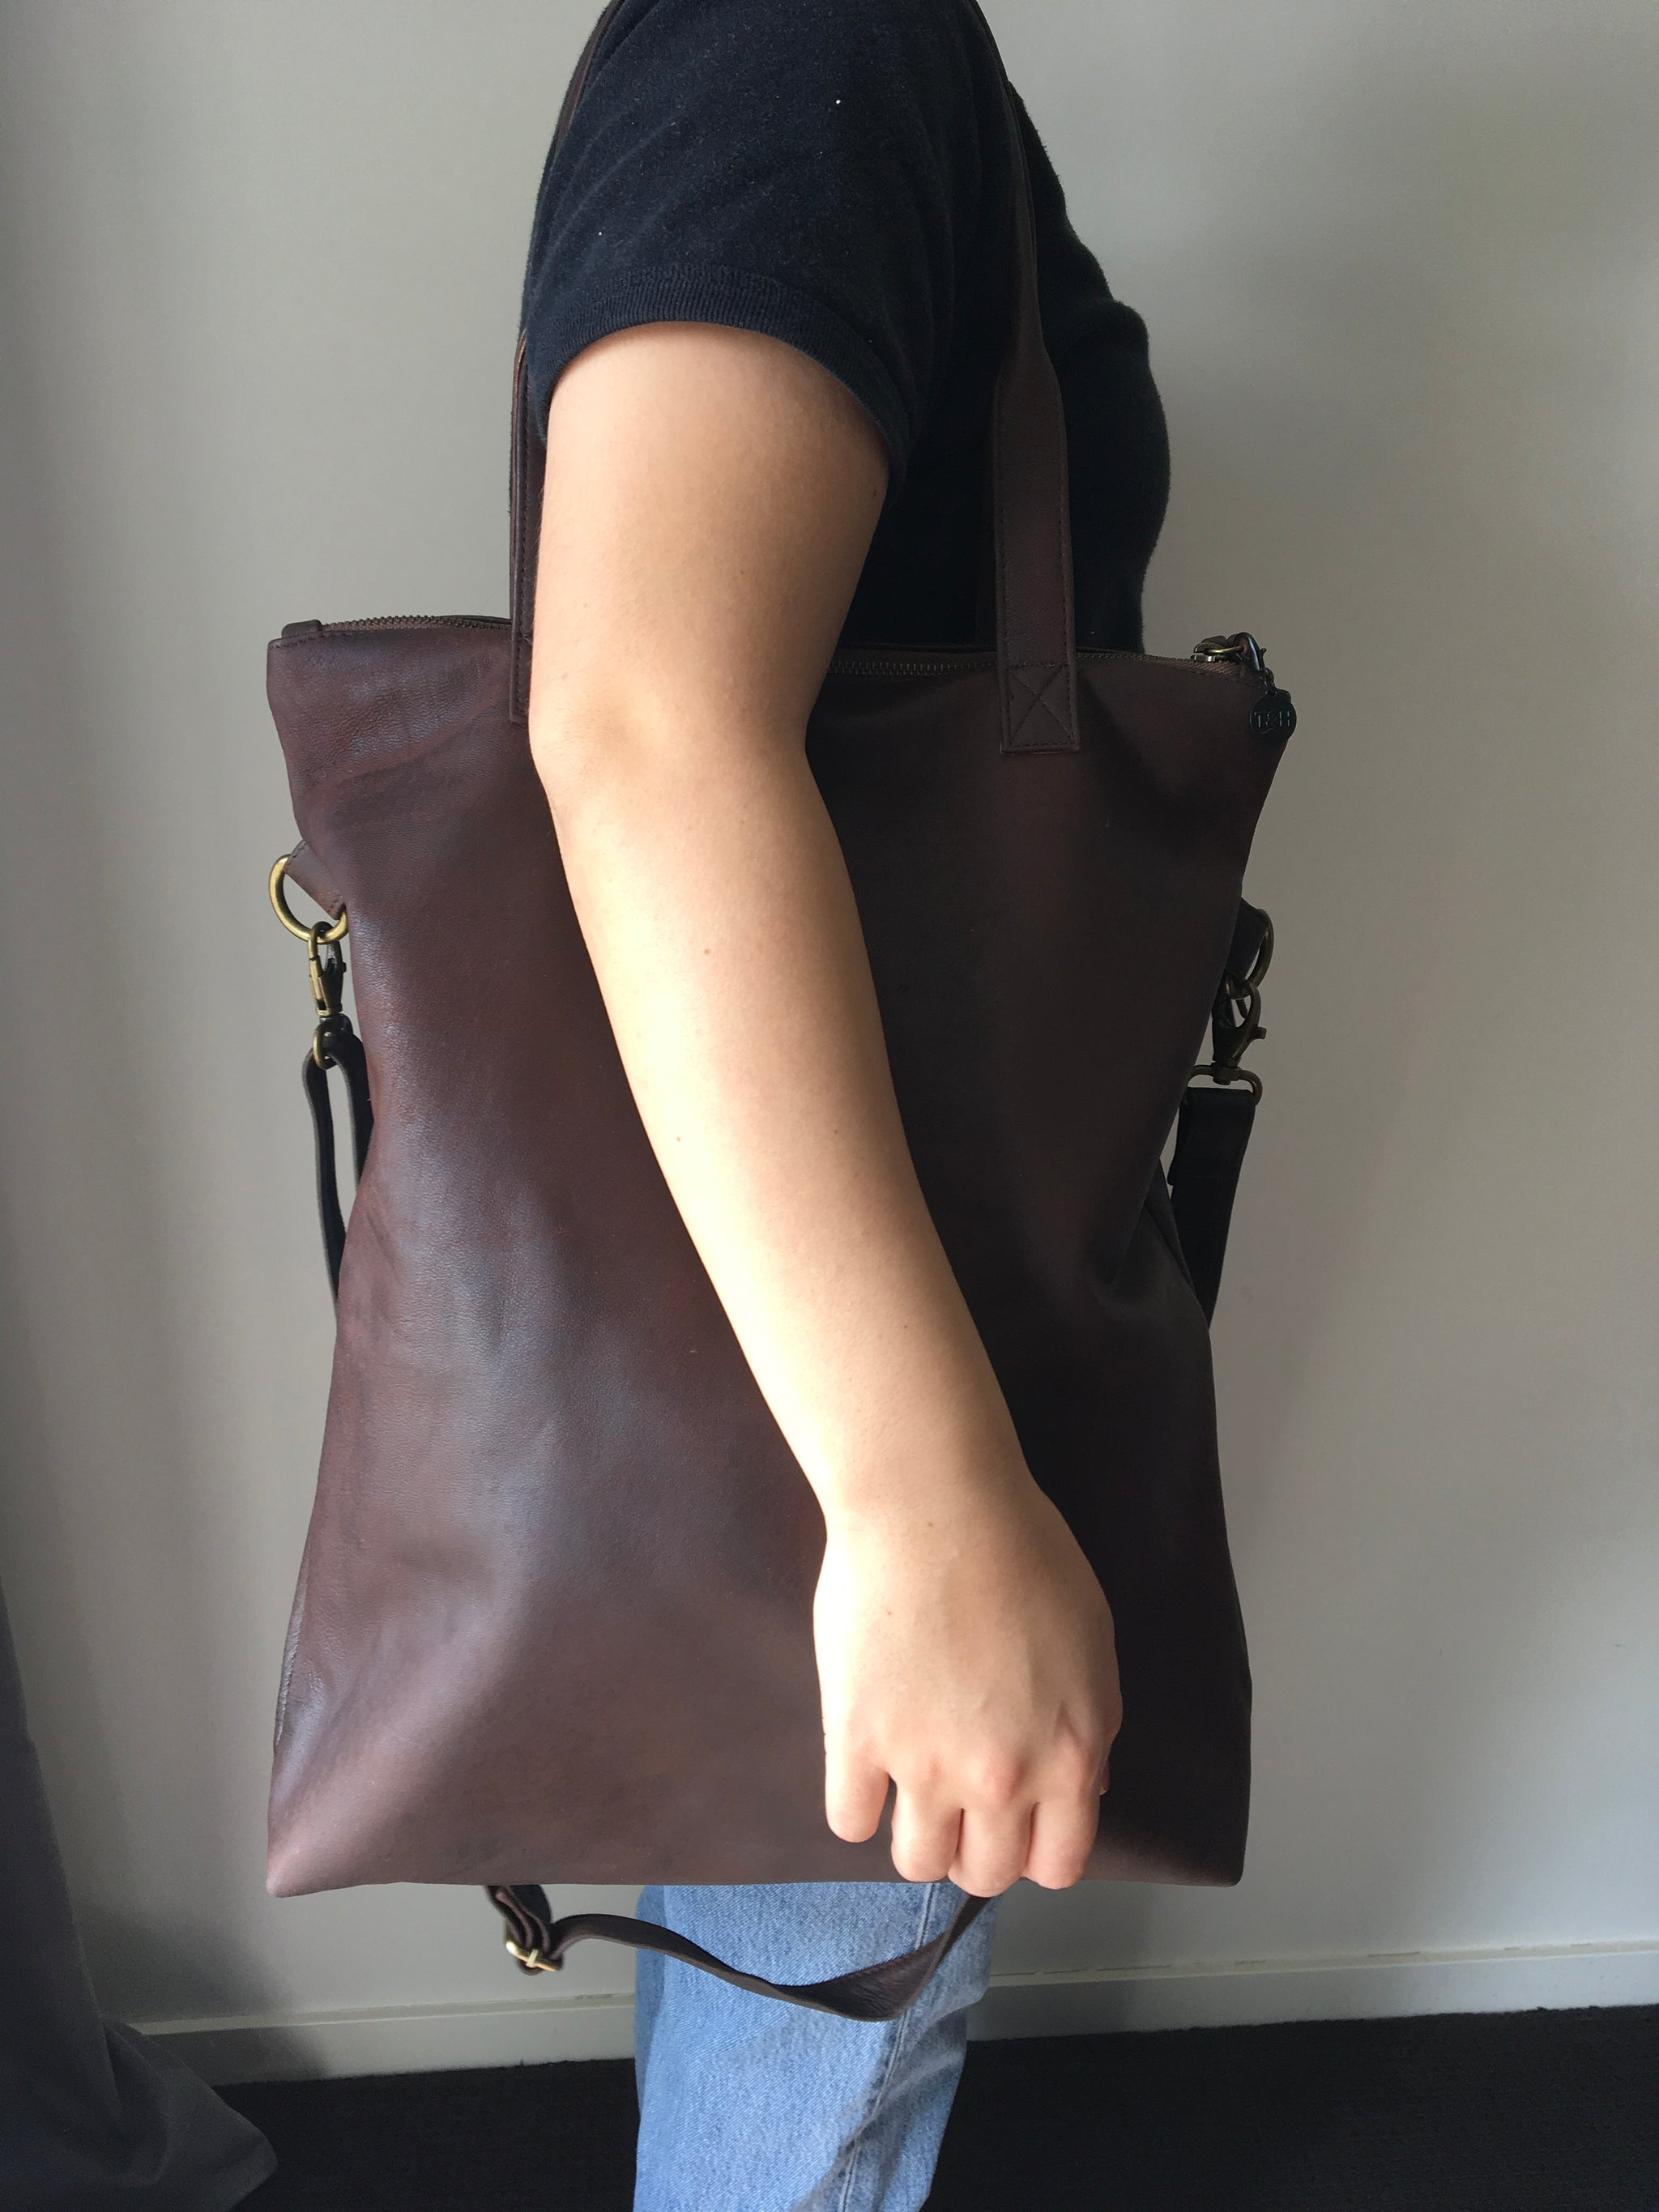 The Traveller-Genuine lambskin leather shoulder tote bag.